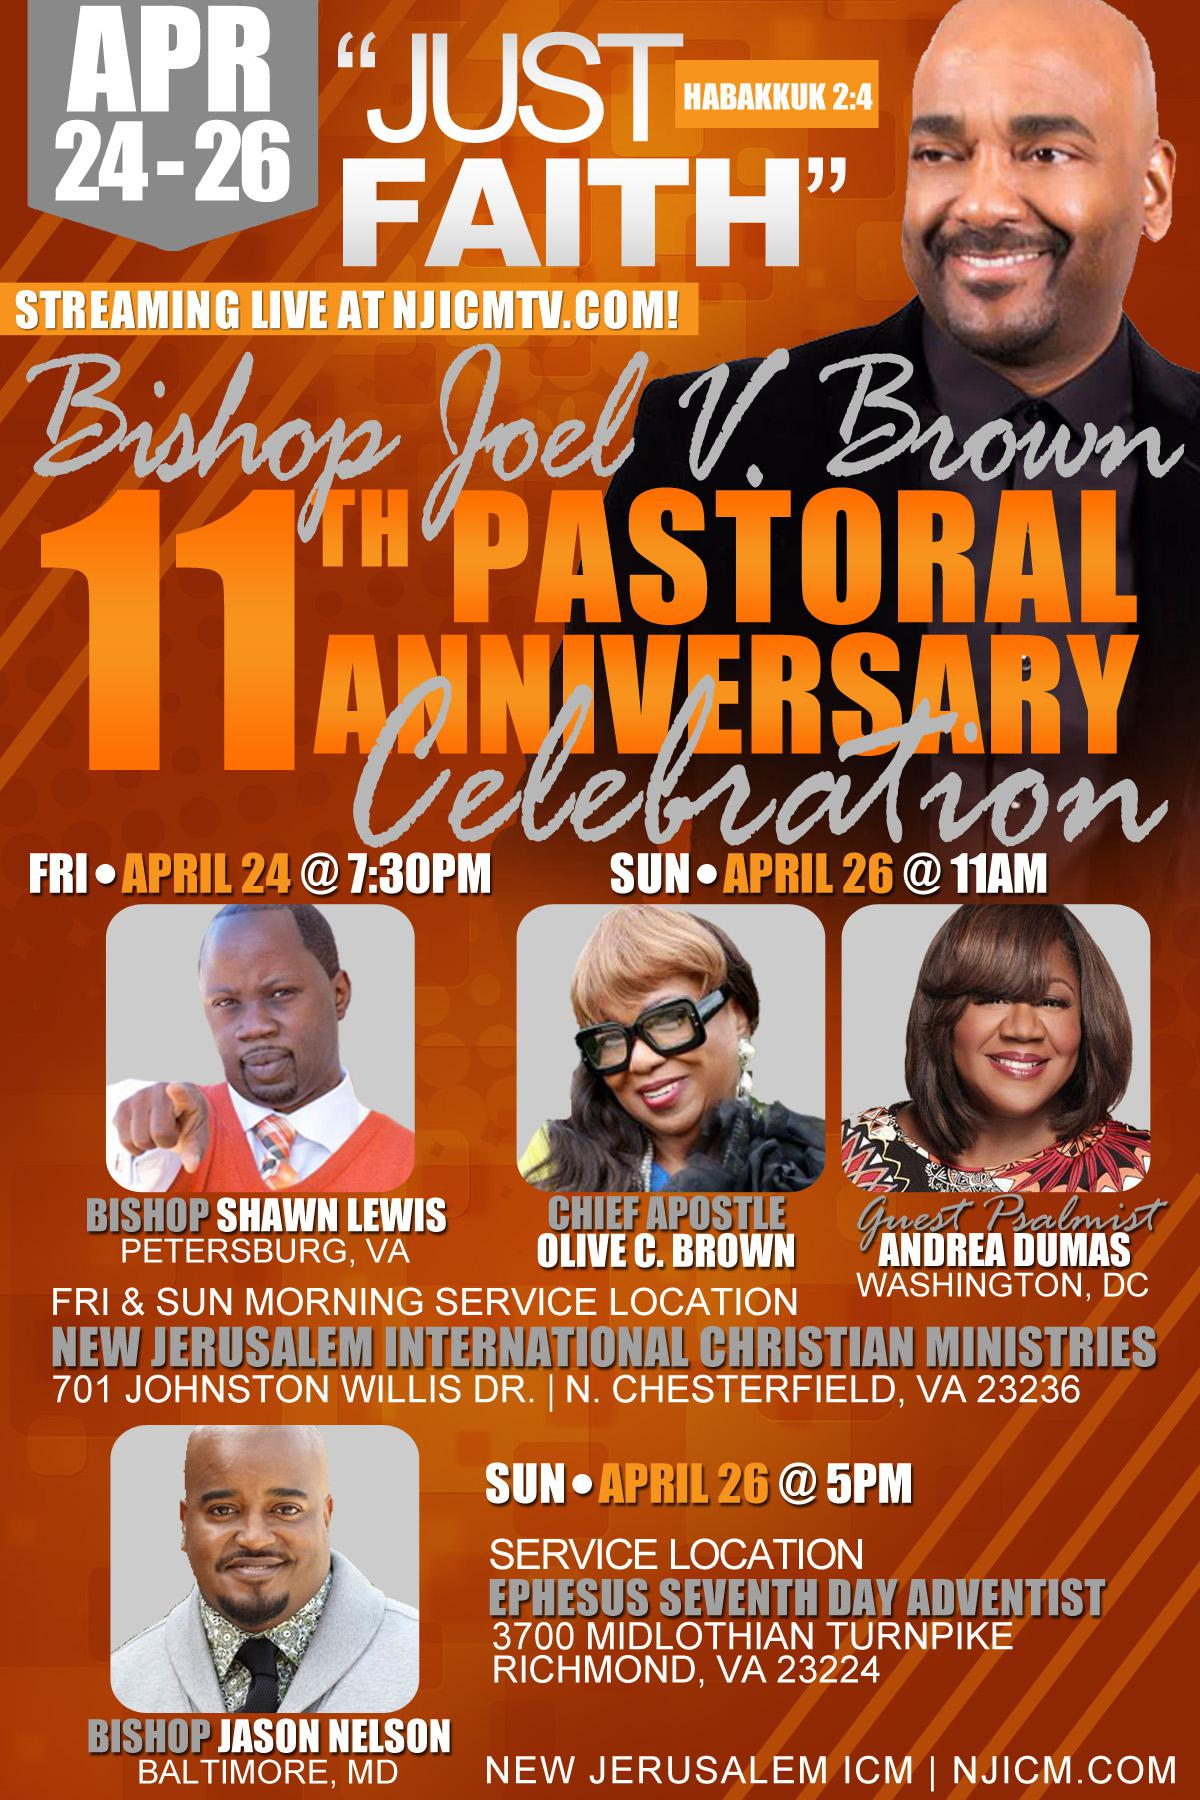 11th Pastoral Anniversary Celebration honoring Bishop Joel V. Brown